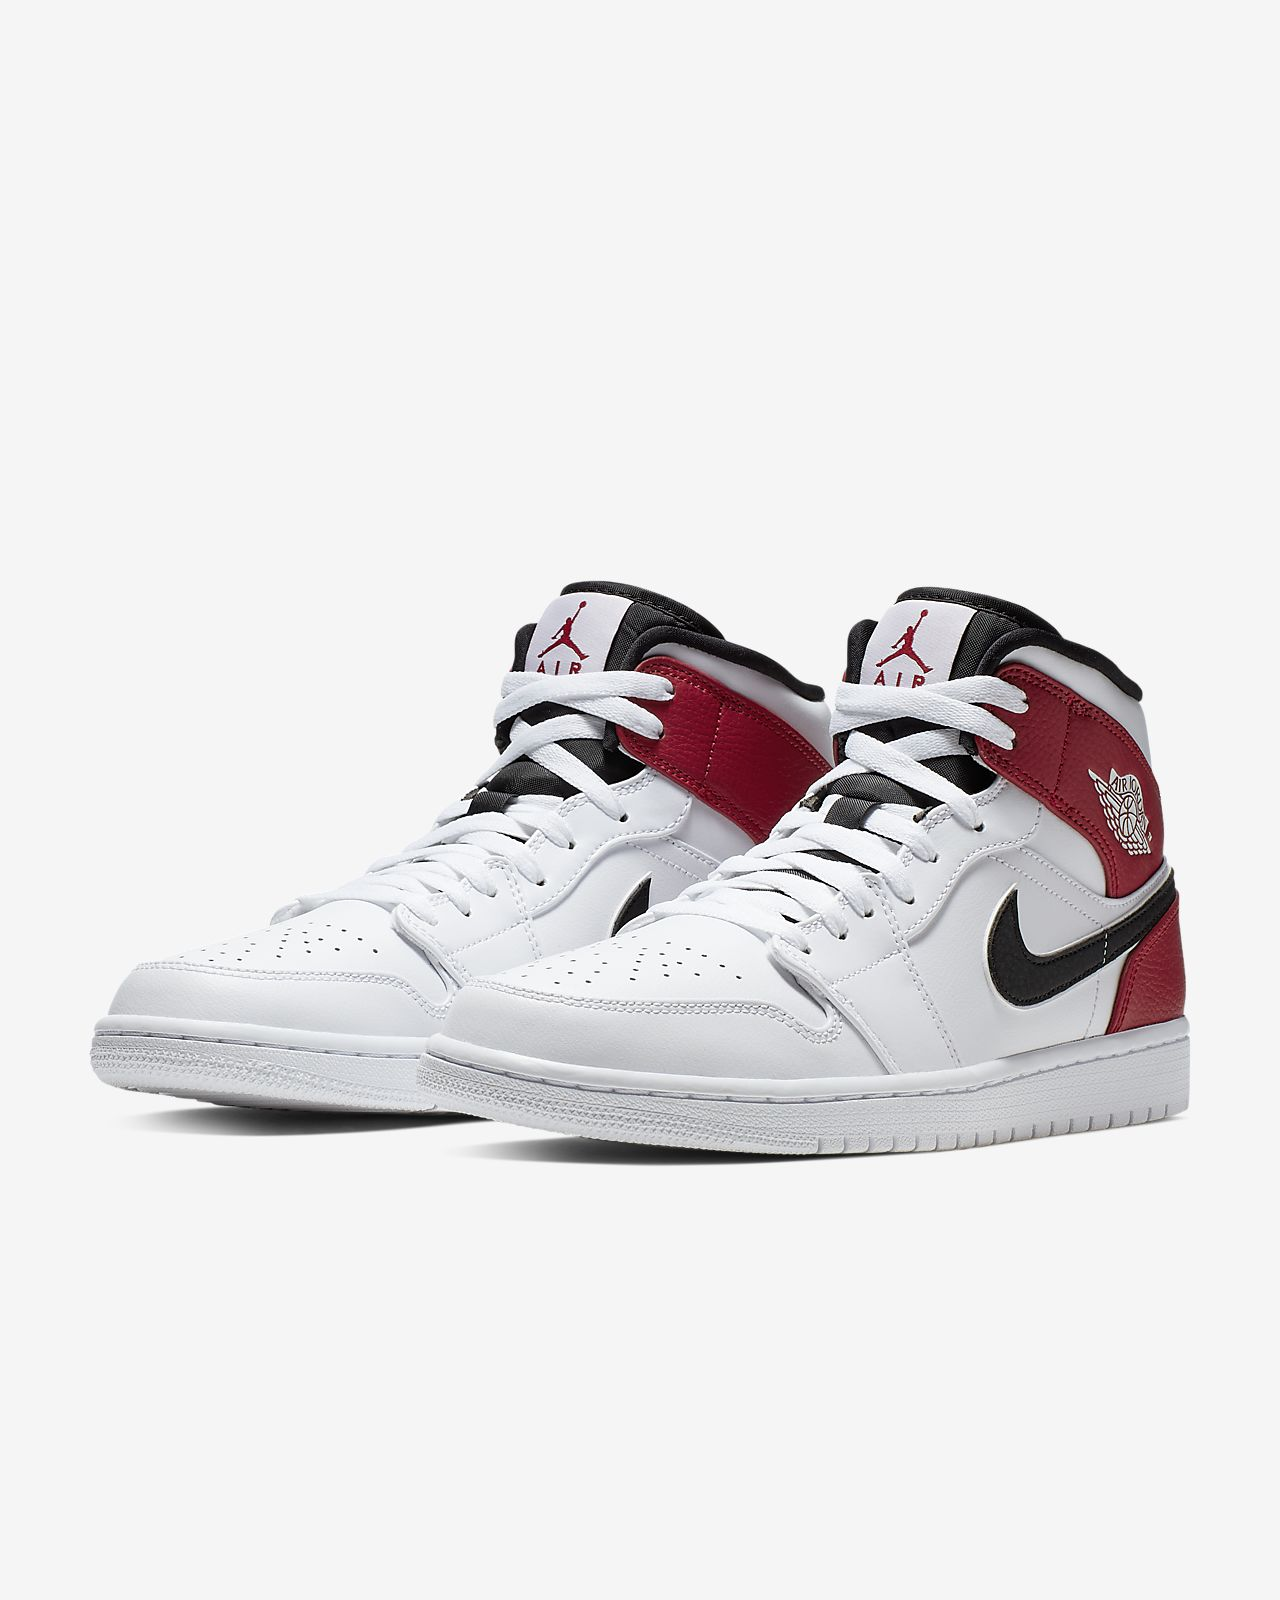 the latest 9b770 0f335 Chaussure Air Jordan 1 Mid pour Homme. Nike.com FR